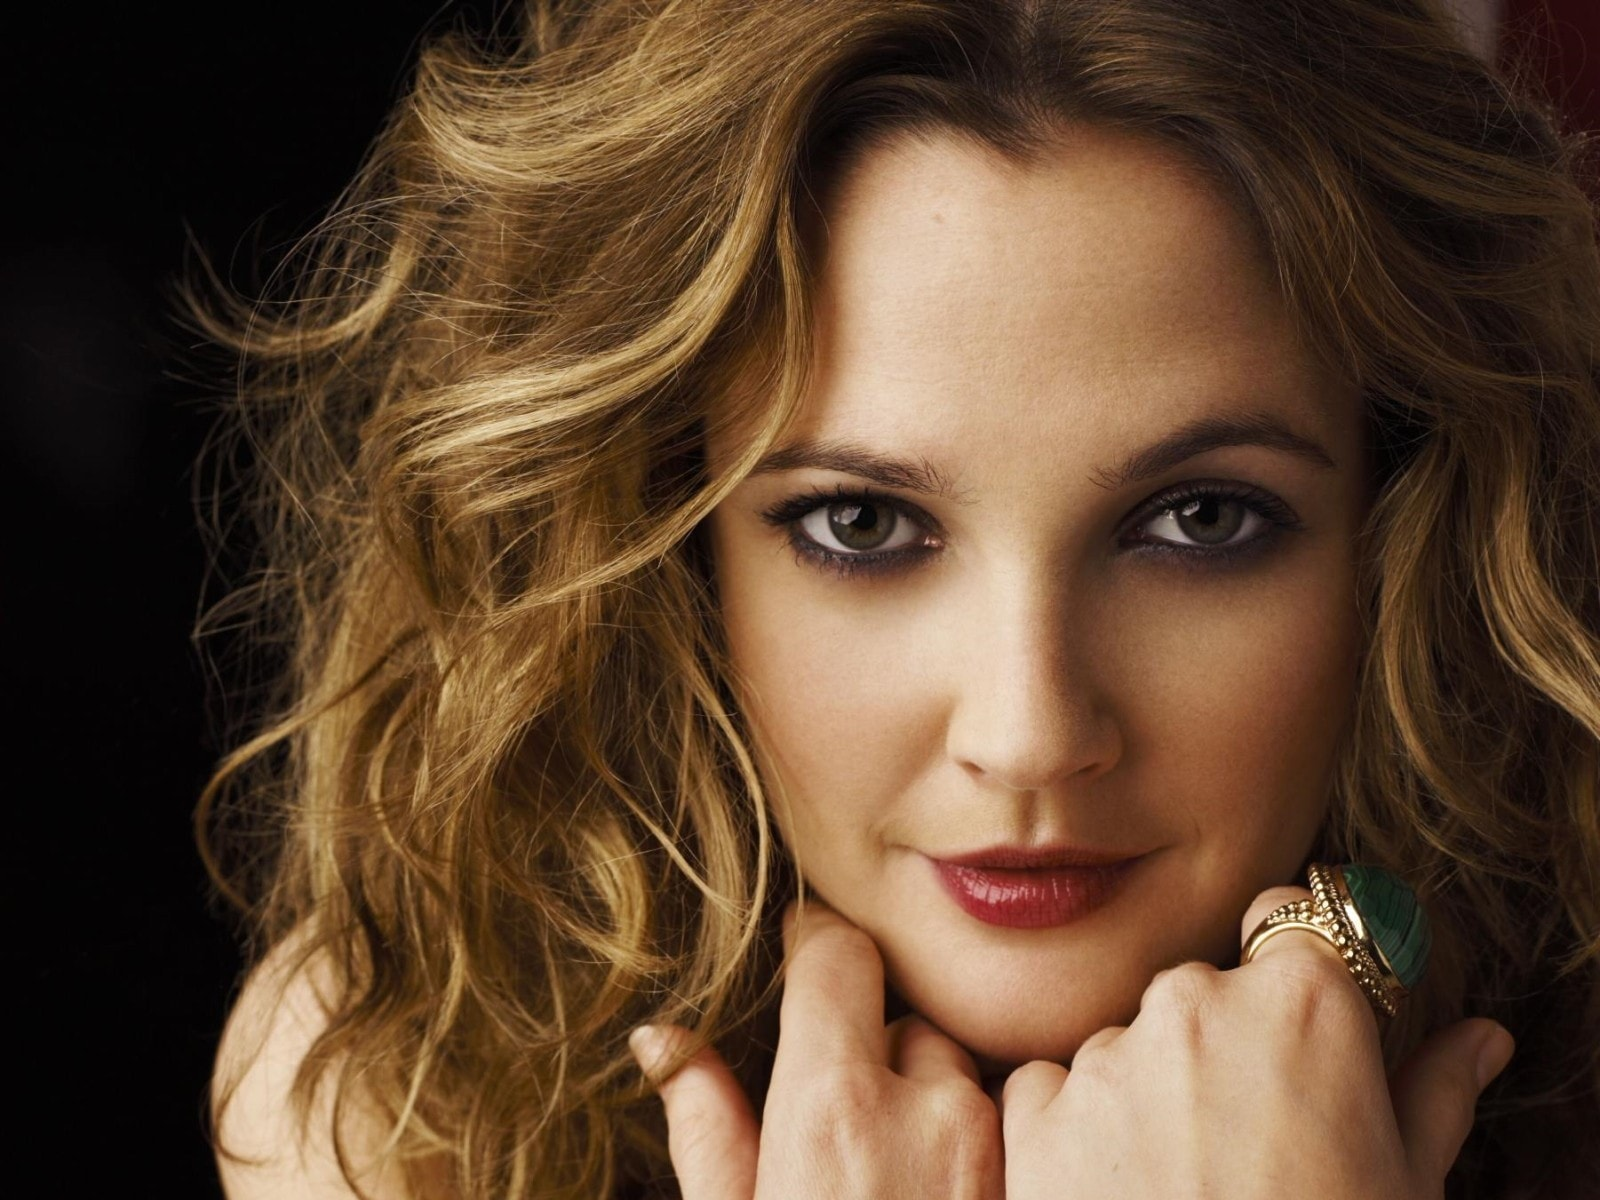 Drew Barrymore HQ wallpapers